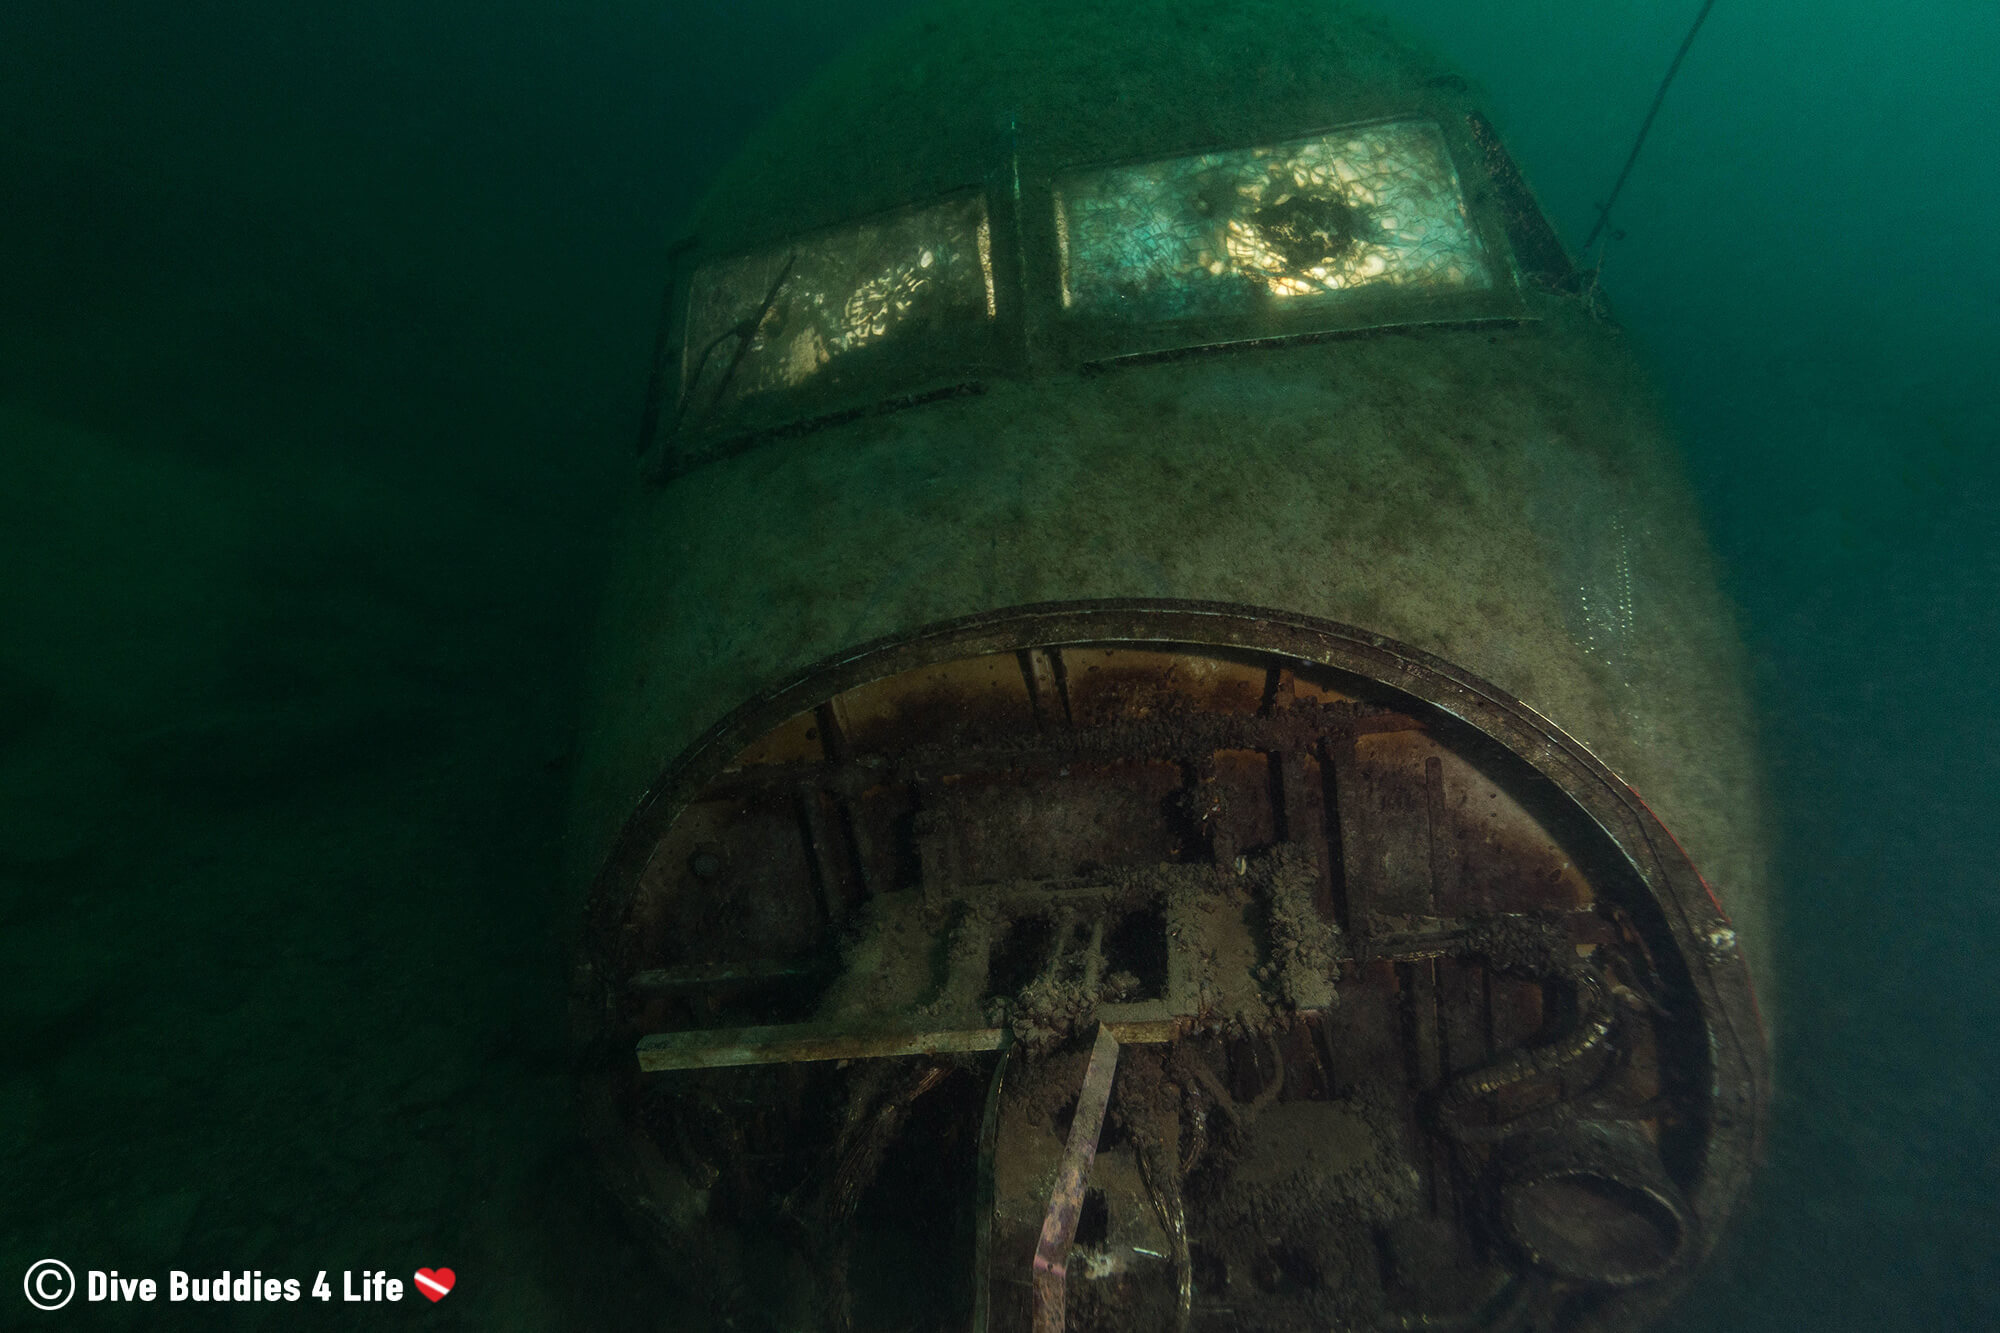 A Sunken Airplane At The Bottom Of The Vobster Inland Diving Quay, England, UK